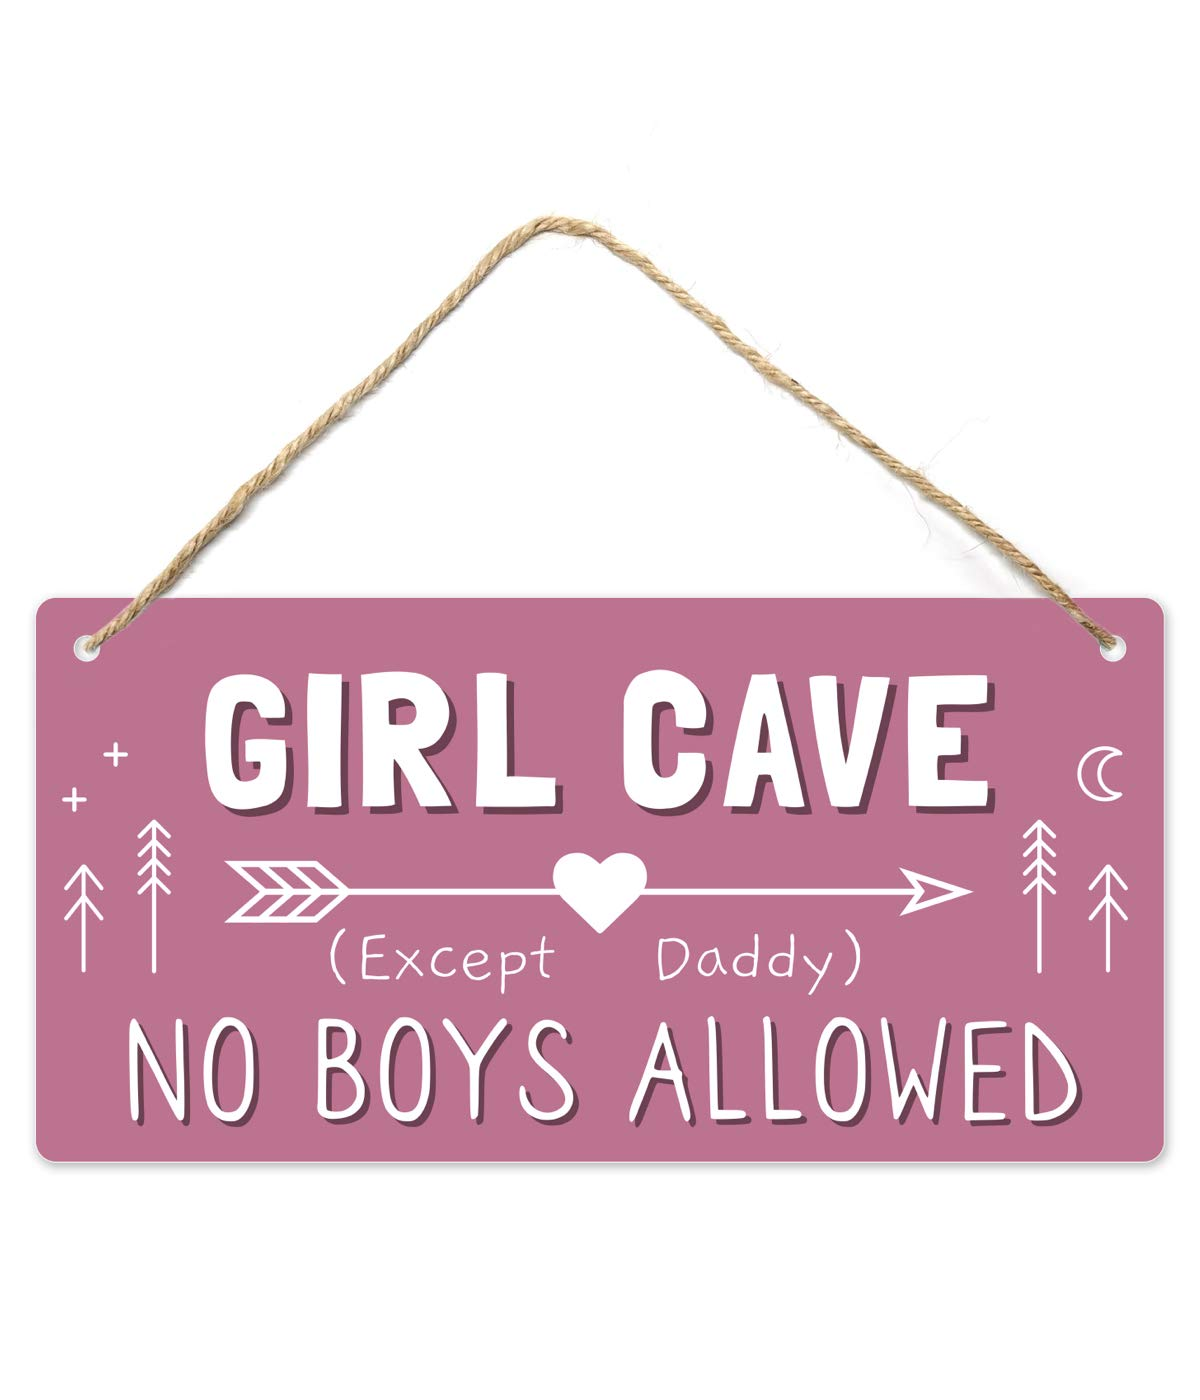 Girl Cave Sign gift Girls Room Decorations 12?x6? for P Superior PVC Bedroom